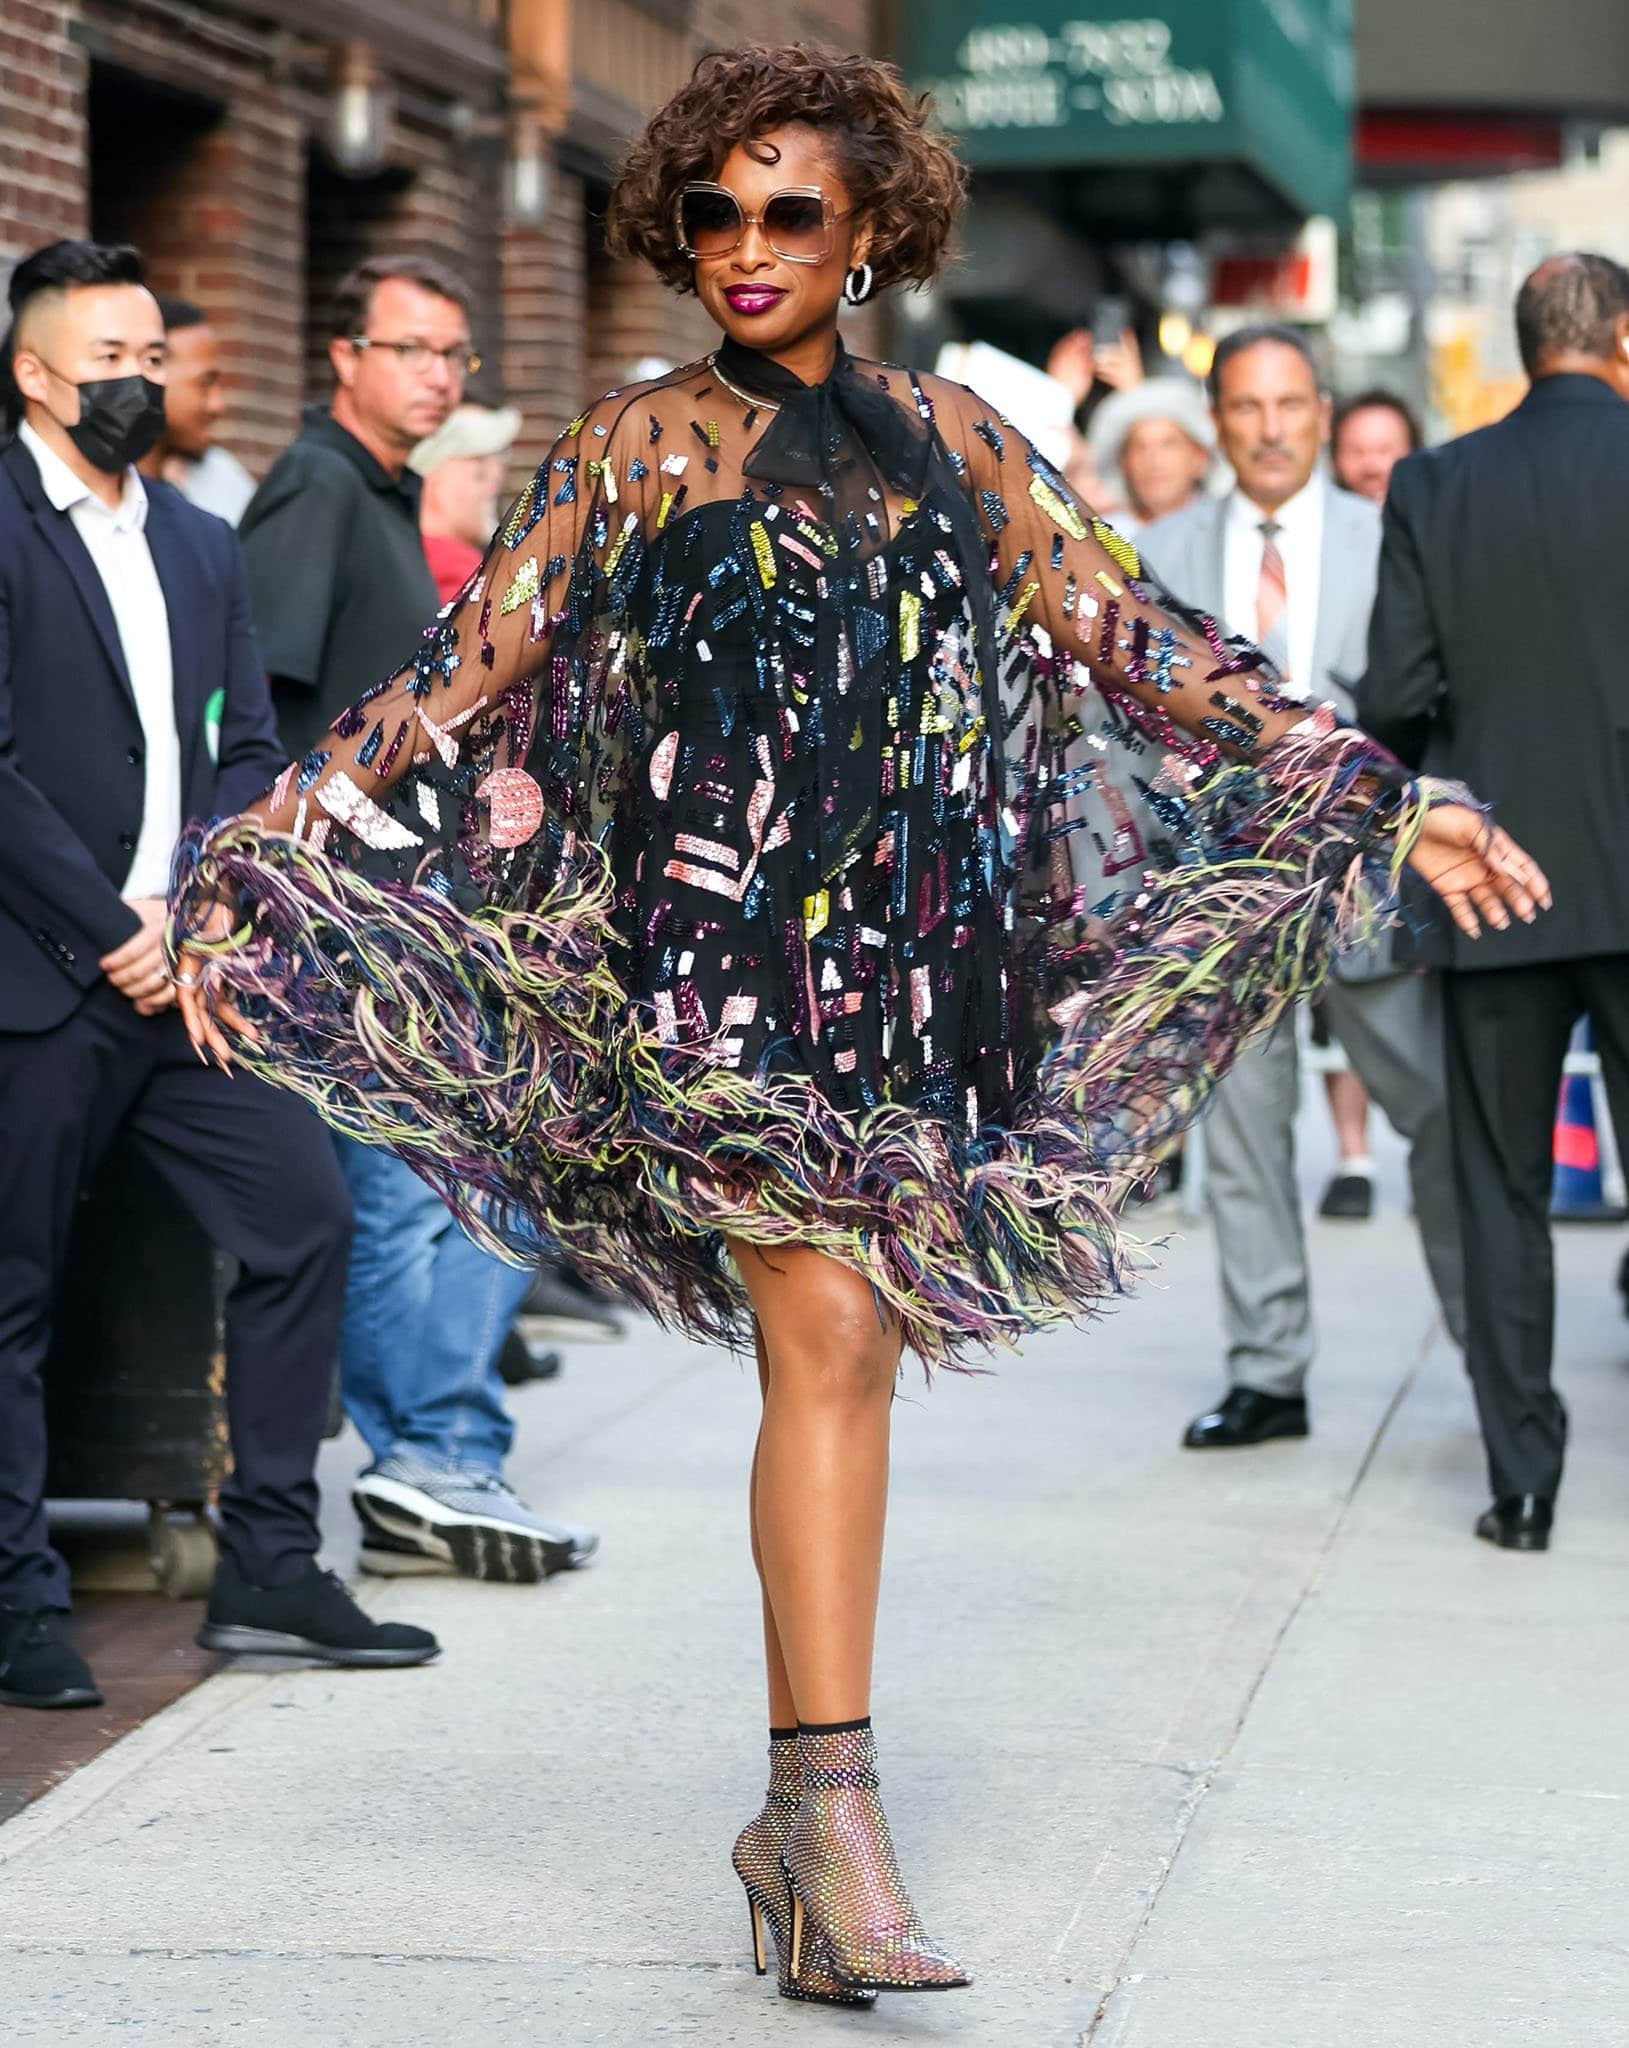 Jennifer Hudson wows in Zuhair Murad sheer mini dress with multicolored geometric sequins and a feathered hem